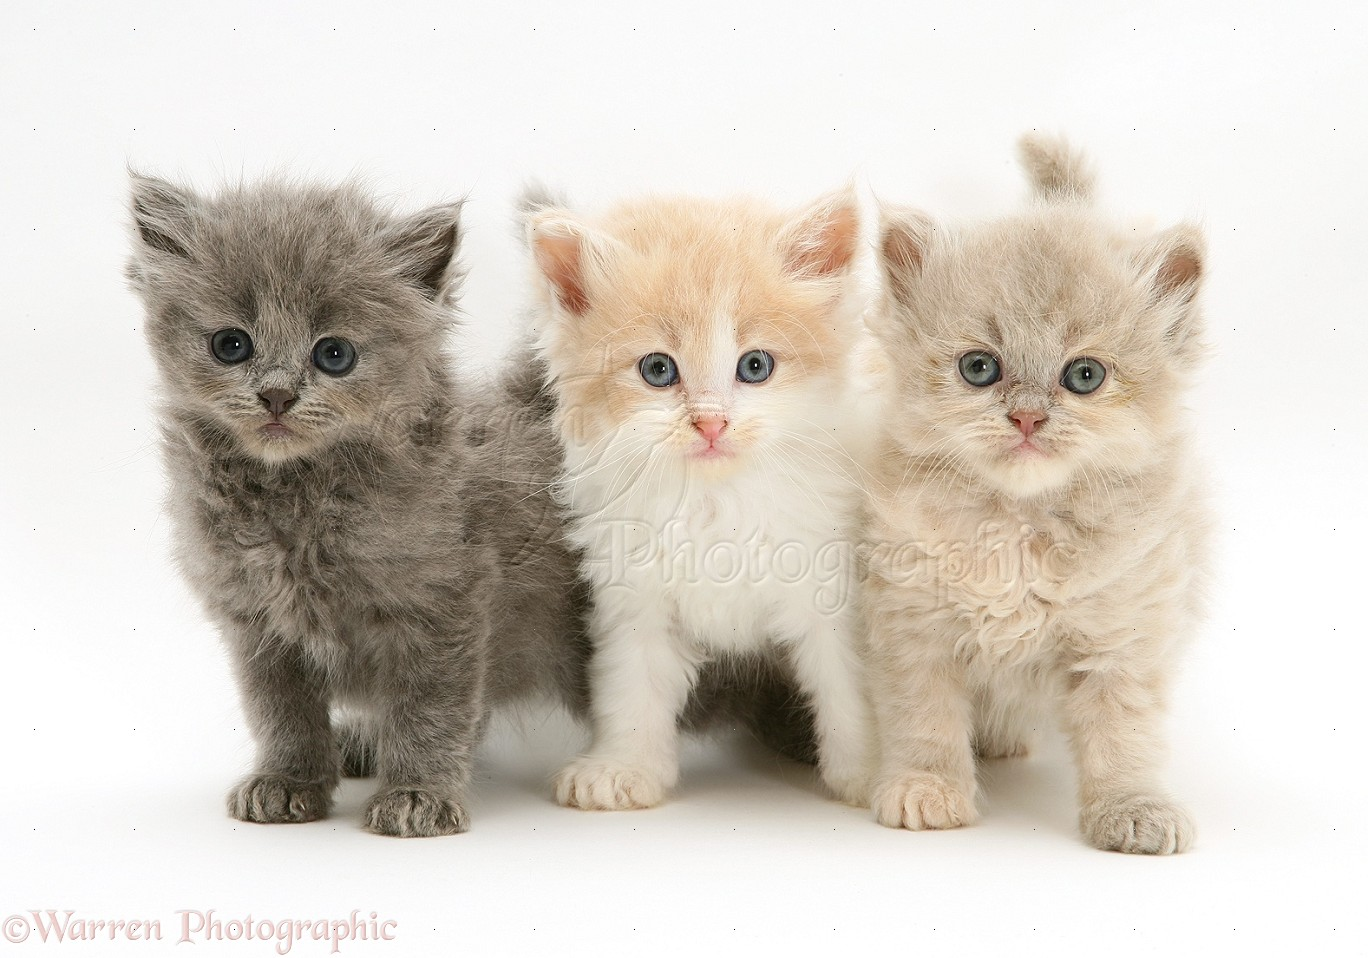 Three cute kittens photo wp34684 The three cats